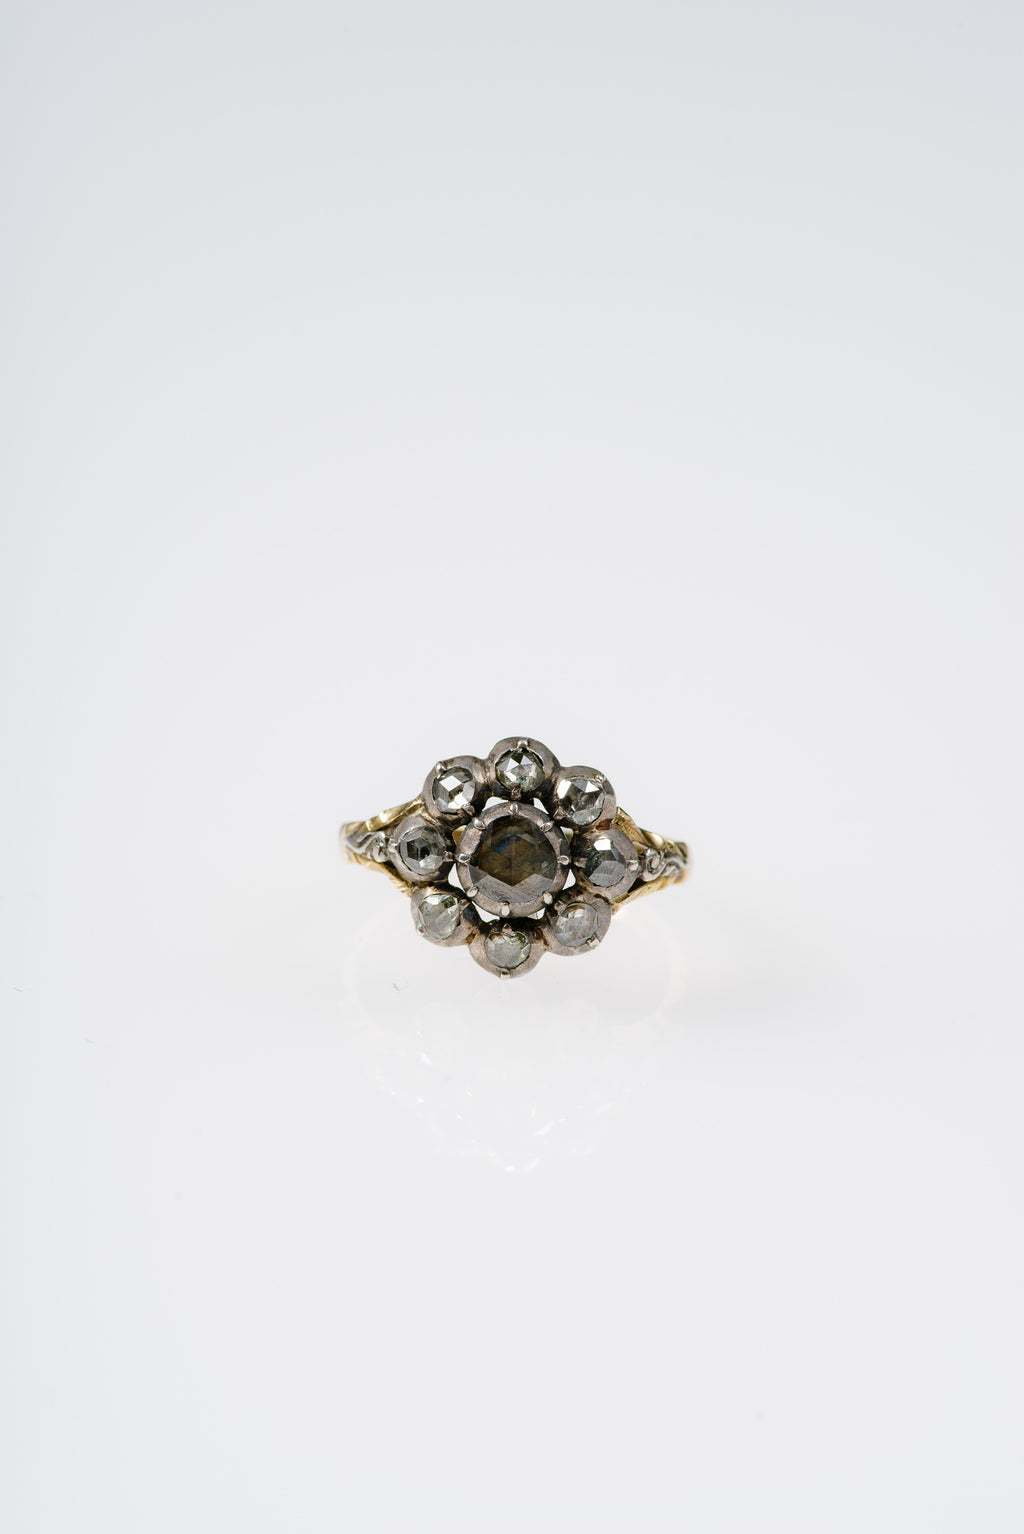 VINTAGE Georgian Era Rose Cut Diamond Cluster Ring